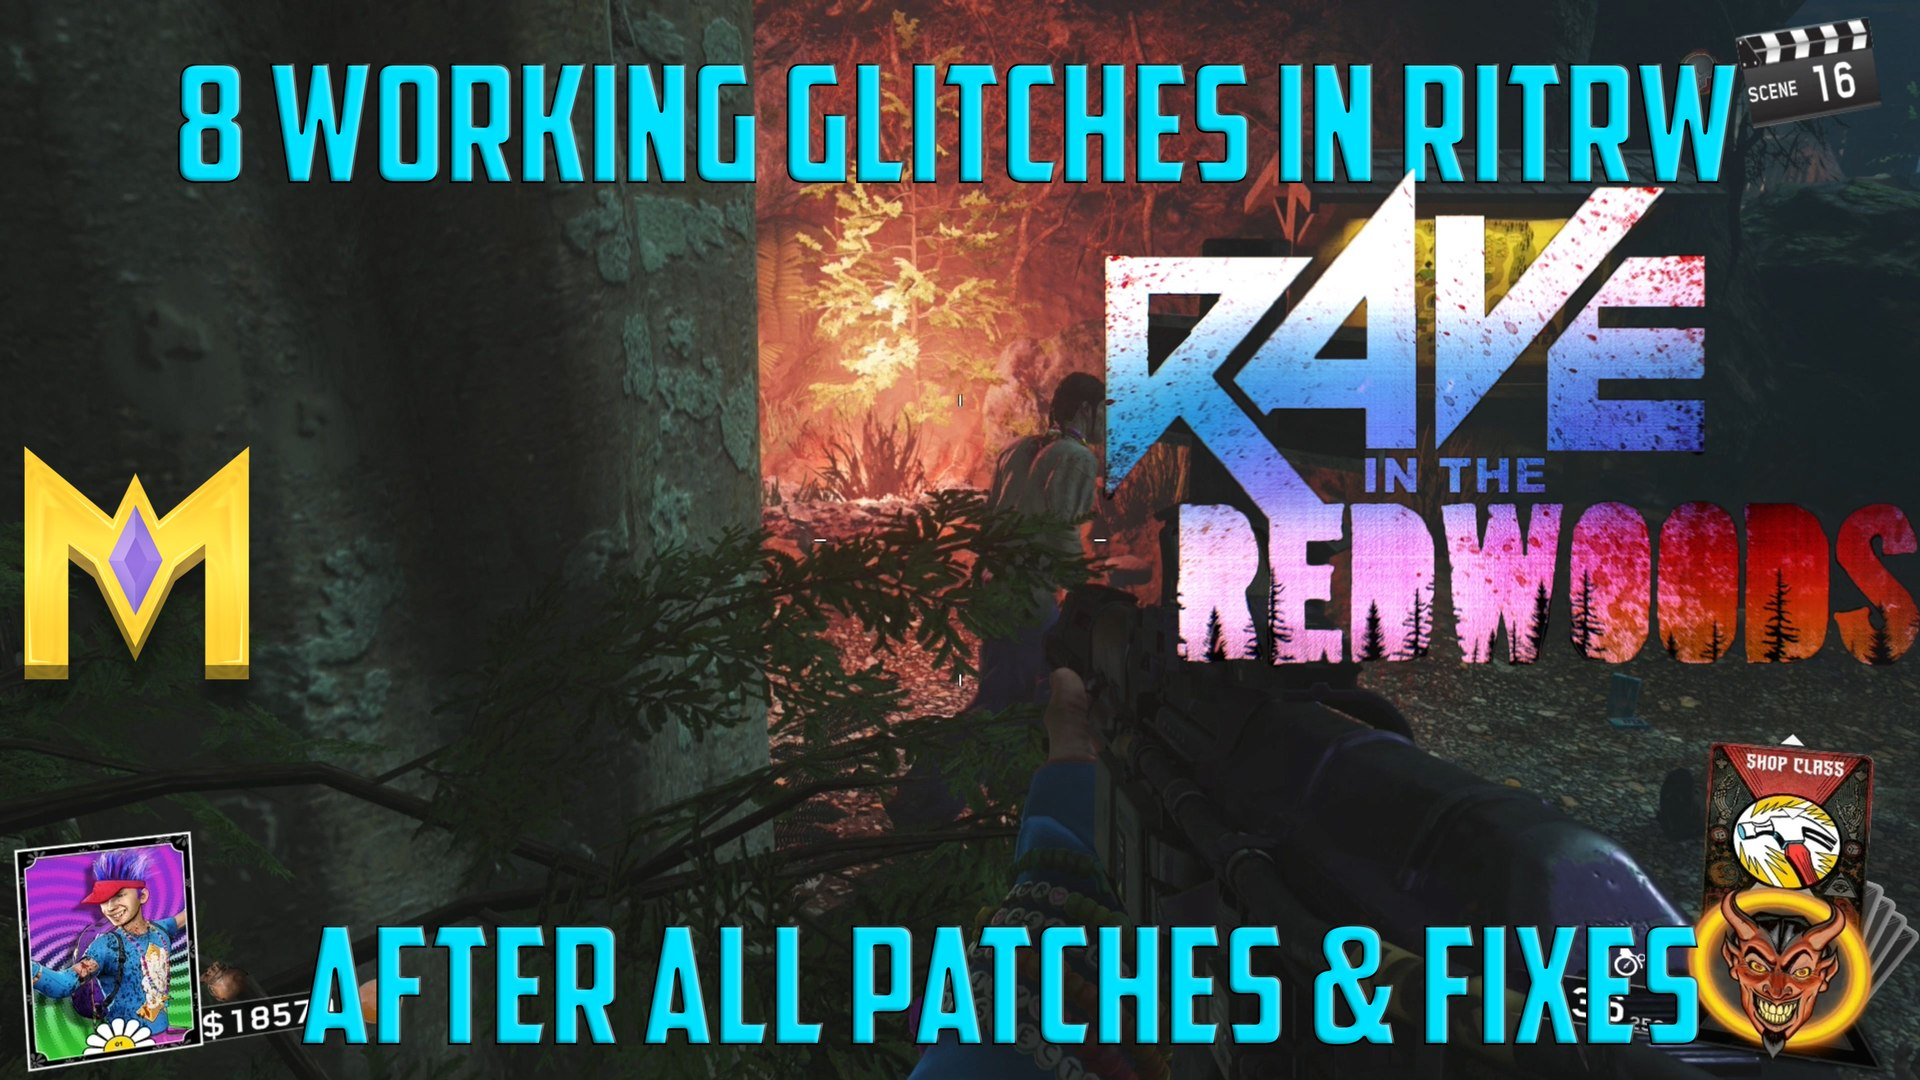 Rave In The Redwoods Glitches - 8 WORKING Glitches ON Rave In The Redwoods -